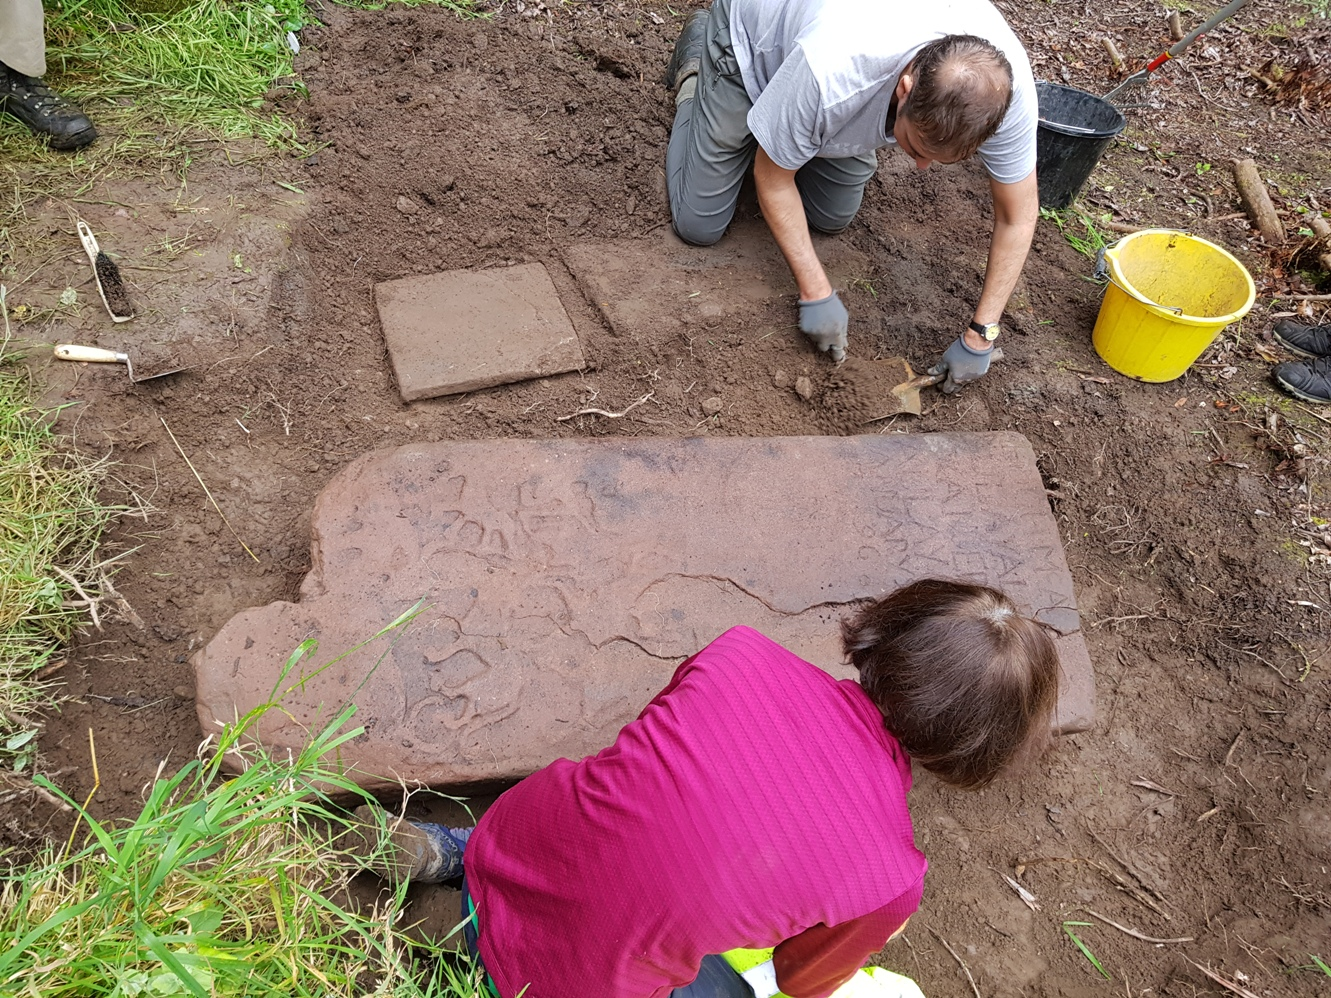 The stone will now be professionally conserved with a view to ultimately putting it on permanent public display at a Highland museum or other suitable venue.